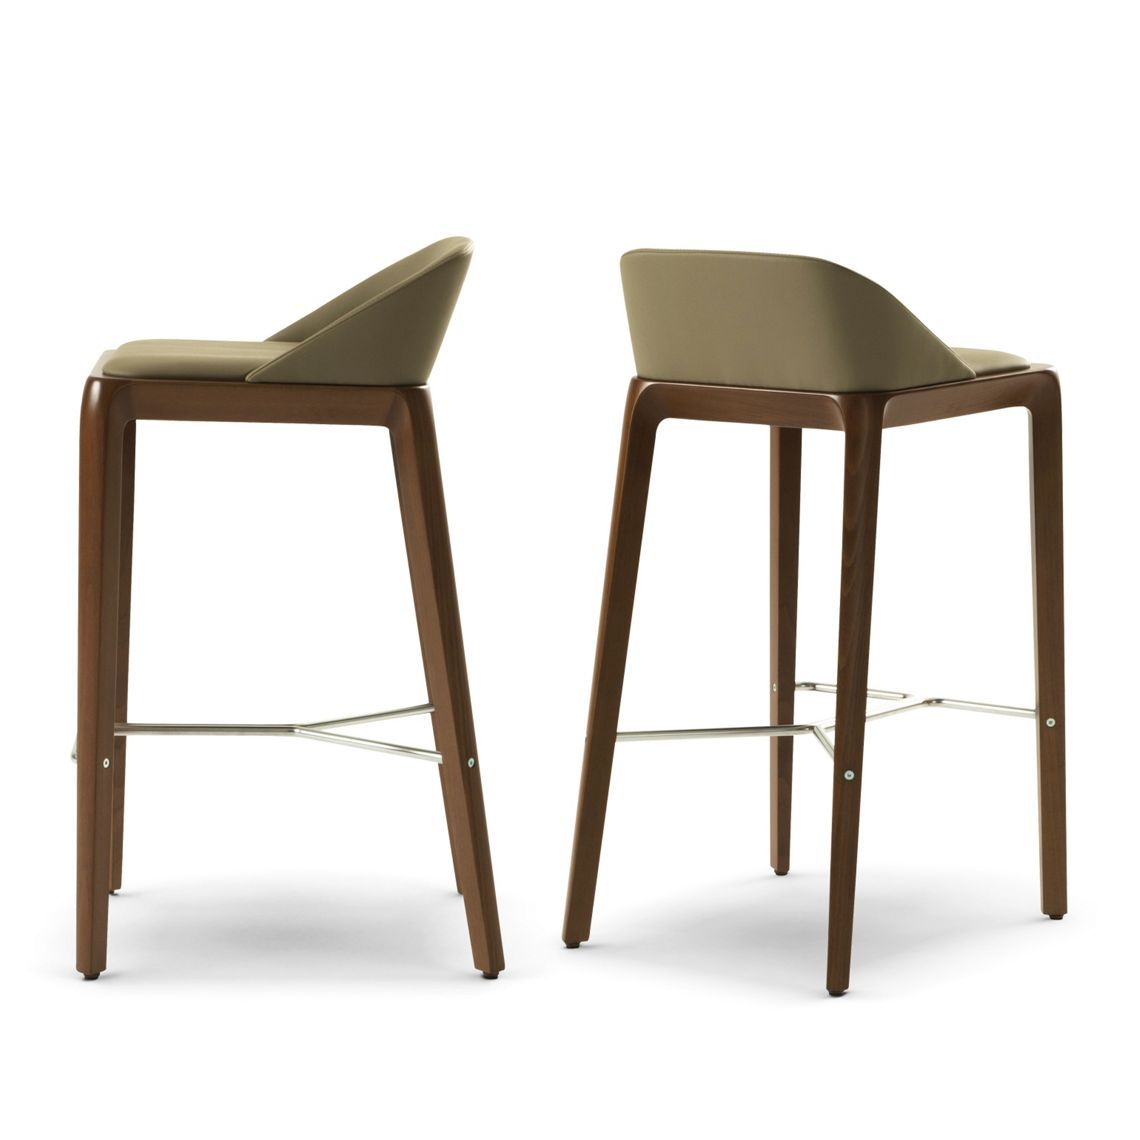 BRIO Bar stool (CHAIRS, STOOLS, BENCHES) - Roche Bobois | Muebles ...